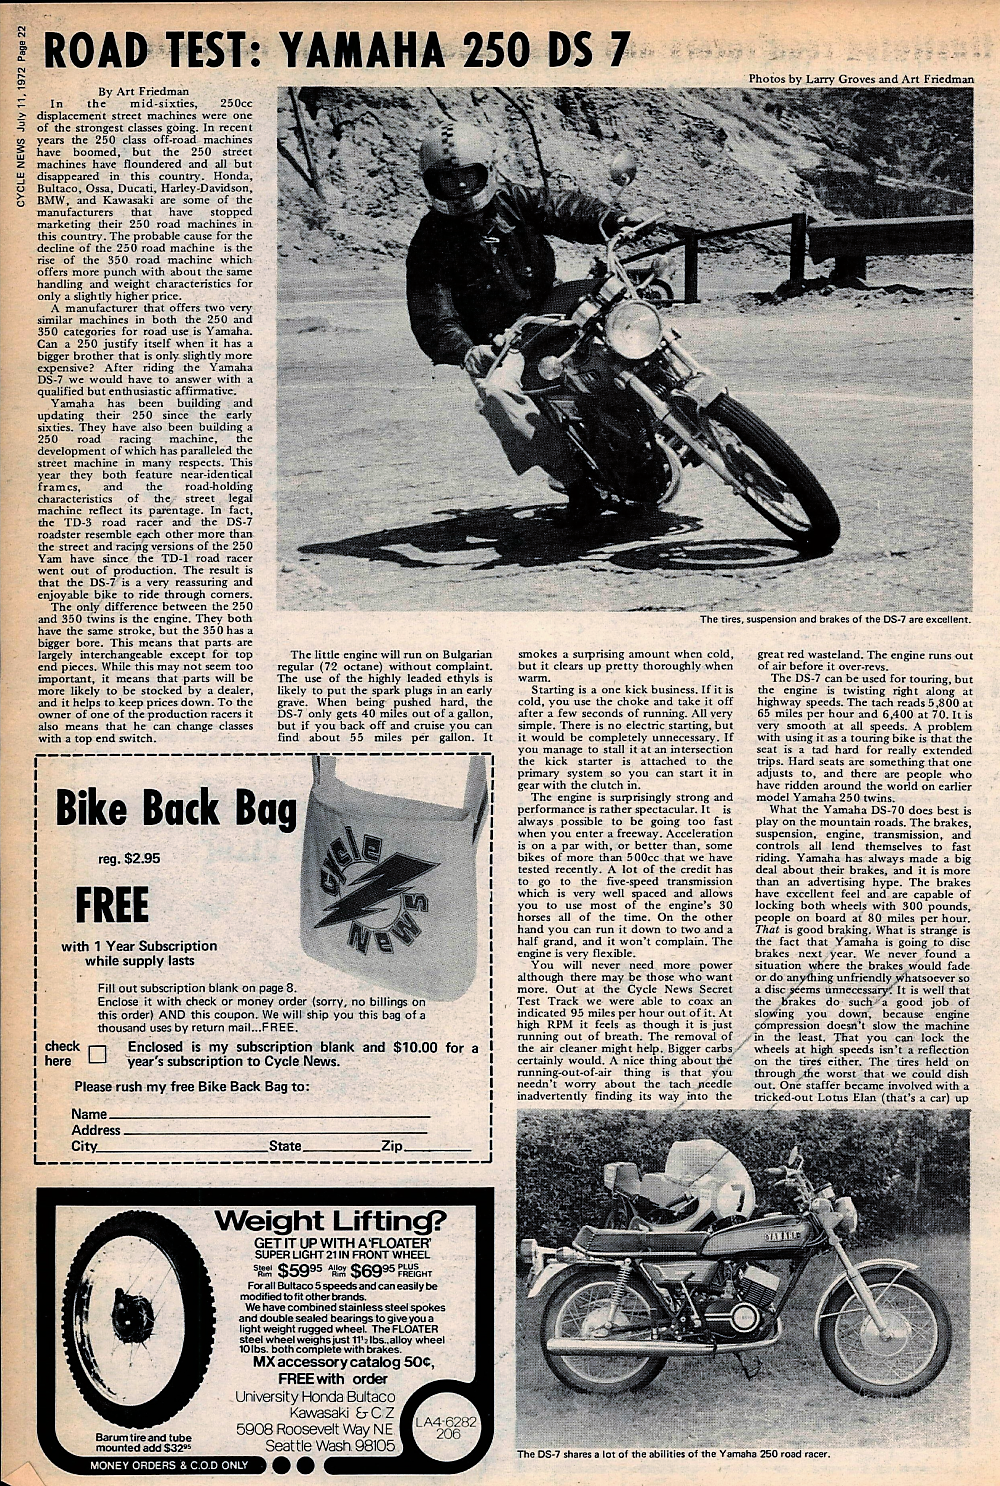 1972 Yamaha 250DS 7 road test  — Ye Olde Cycle Shoppe